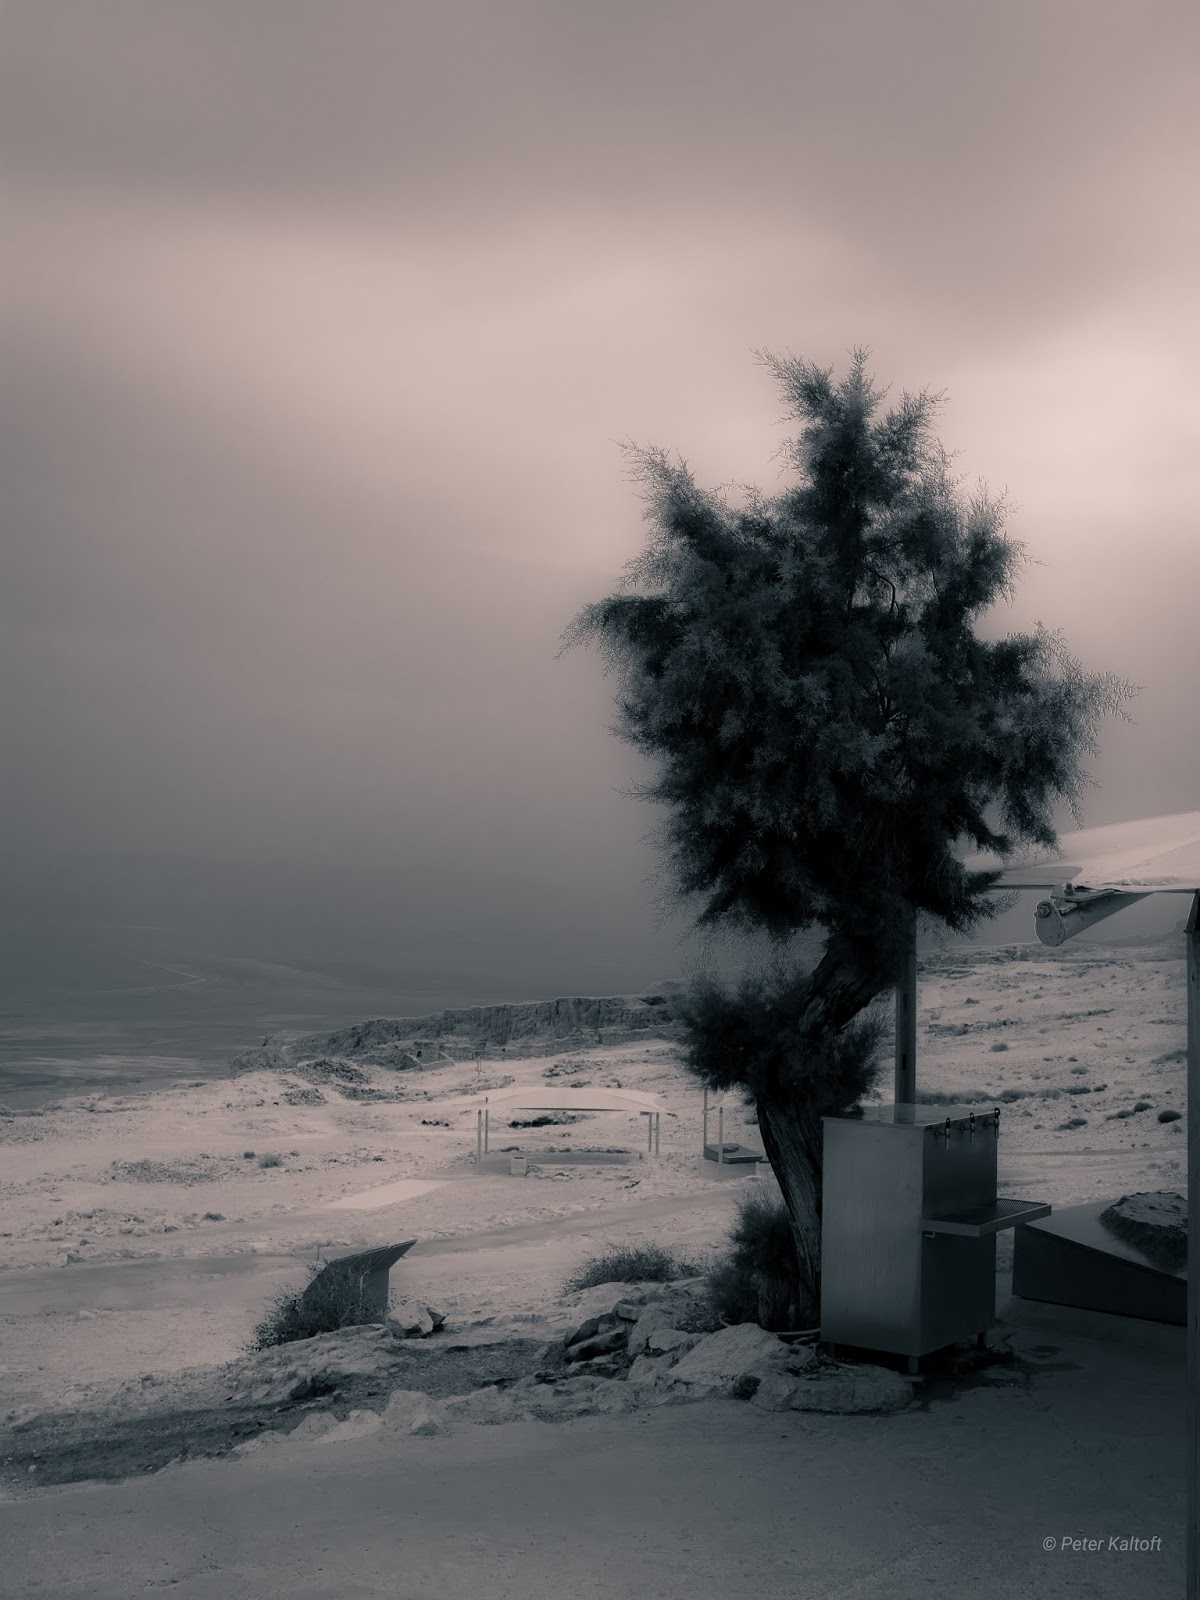 A tree standing on Masada in the Judean desert next to the Dead Sea